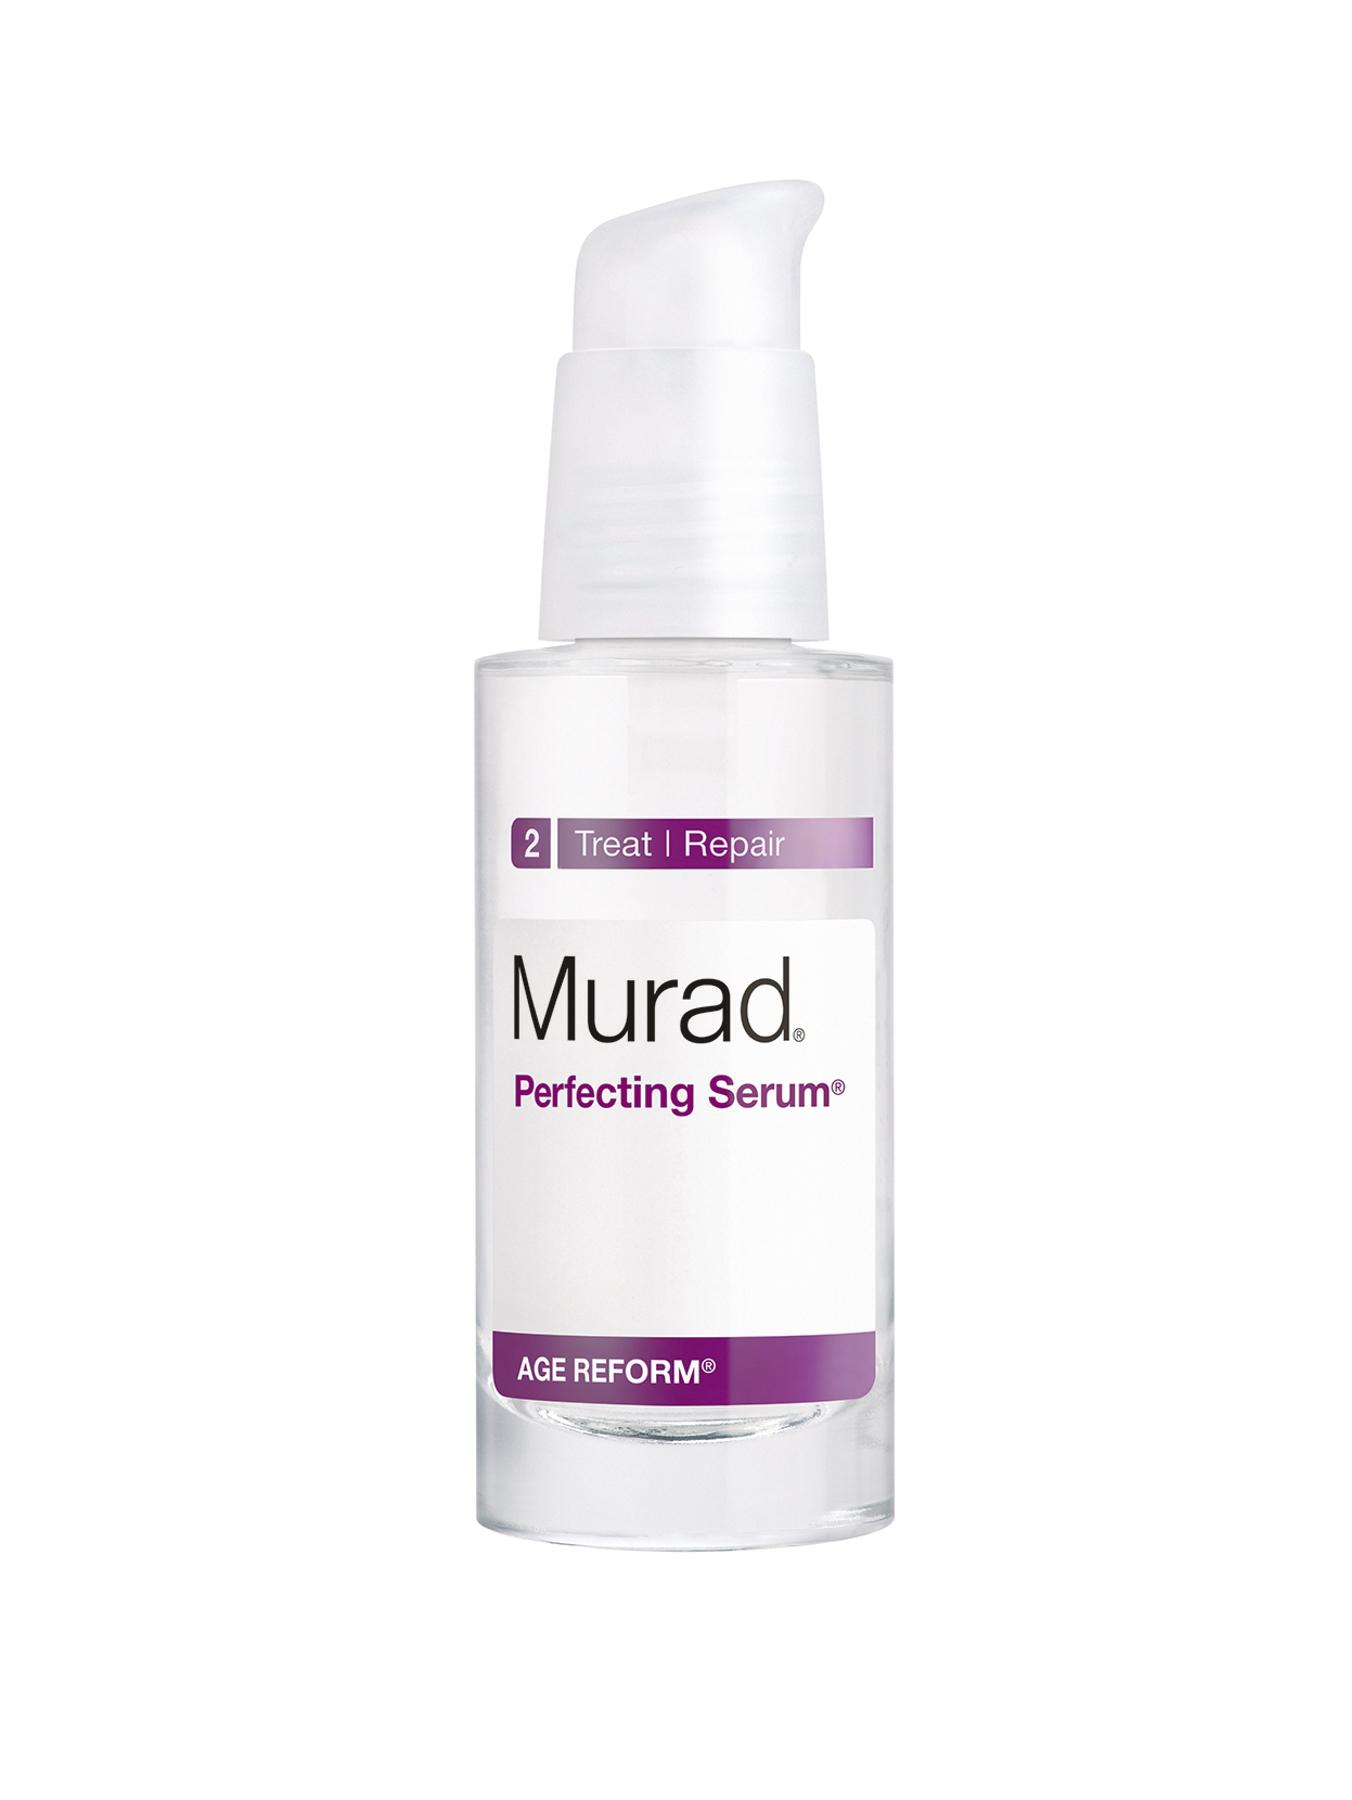 Age Reform Perfecting Serum 30ml.